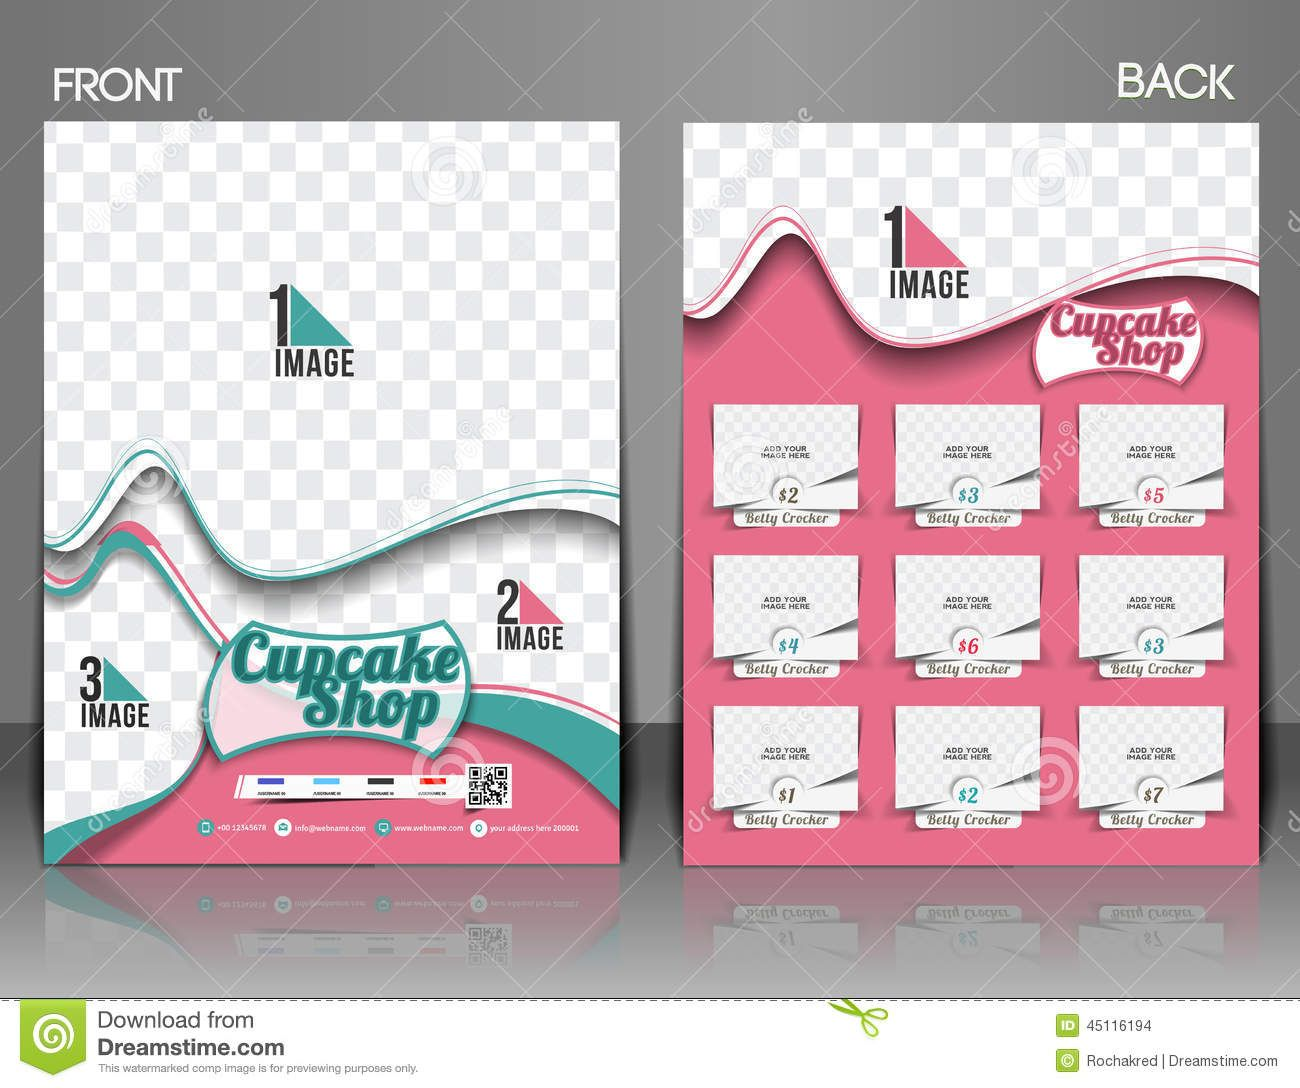 Cup Cake Shop Flyer Download From Over Million High Quality - Bakery brochure template free